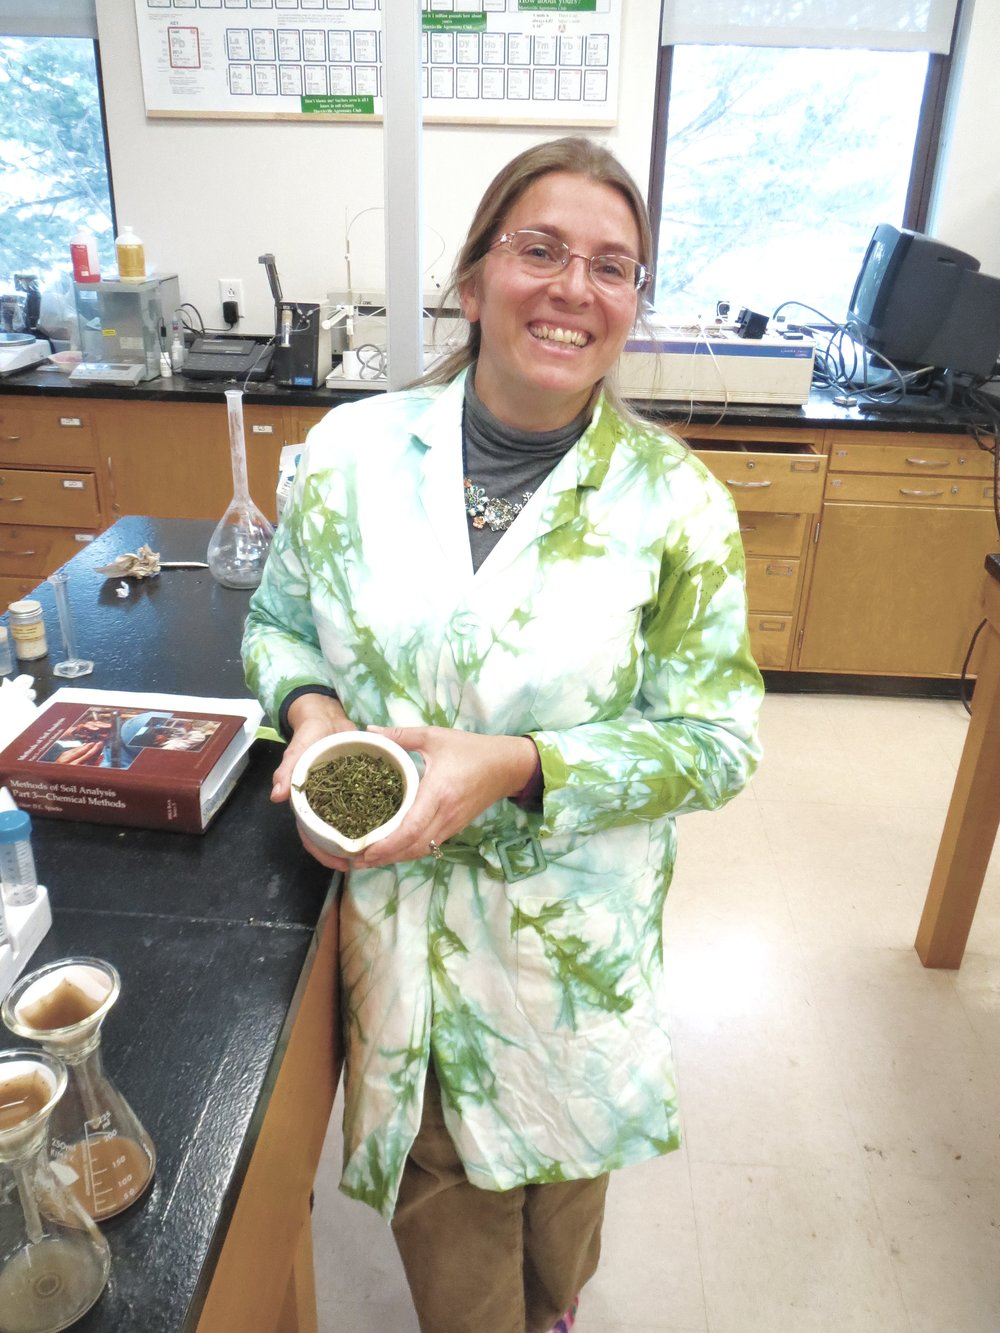 Jennifer Gilbert Jenkins - Jennifer is an Assistant Professor  in Agricultural Science at SUNY Morrisville.  She is a soil chemist and has over 15 years of experience in agricultural nutrient management.  Jennifer acquired the first permit to grow industrial hemp in New York for SUNY Morrisville in cooperation with their first year partners JD Farm.  Since the 2016 growing season, Jennifer's research has focused on nutrient management to maximize hemp production for food and fiber.  Additionally, she is working to understand what common New York State agricultural pests will be most problematic for hemp production.  In the current growing season, Jennifer is conducting trials on 60 acres of land at SUNY Morrisville as well as an additional 100+ acres across 8 partner farms in the state.